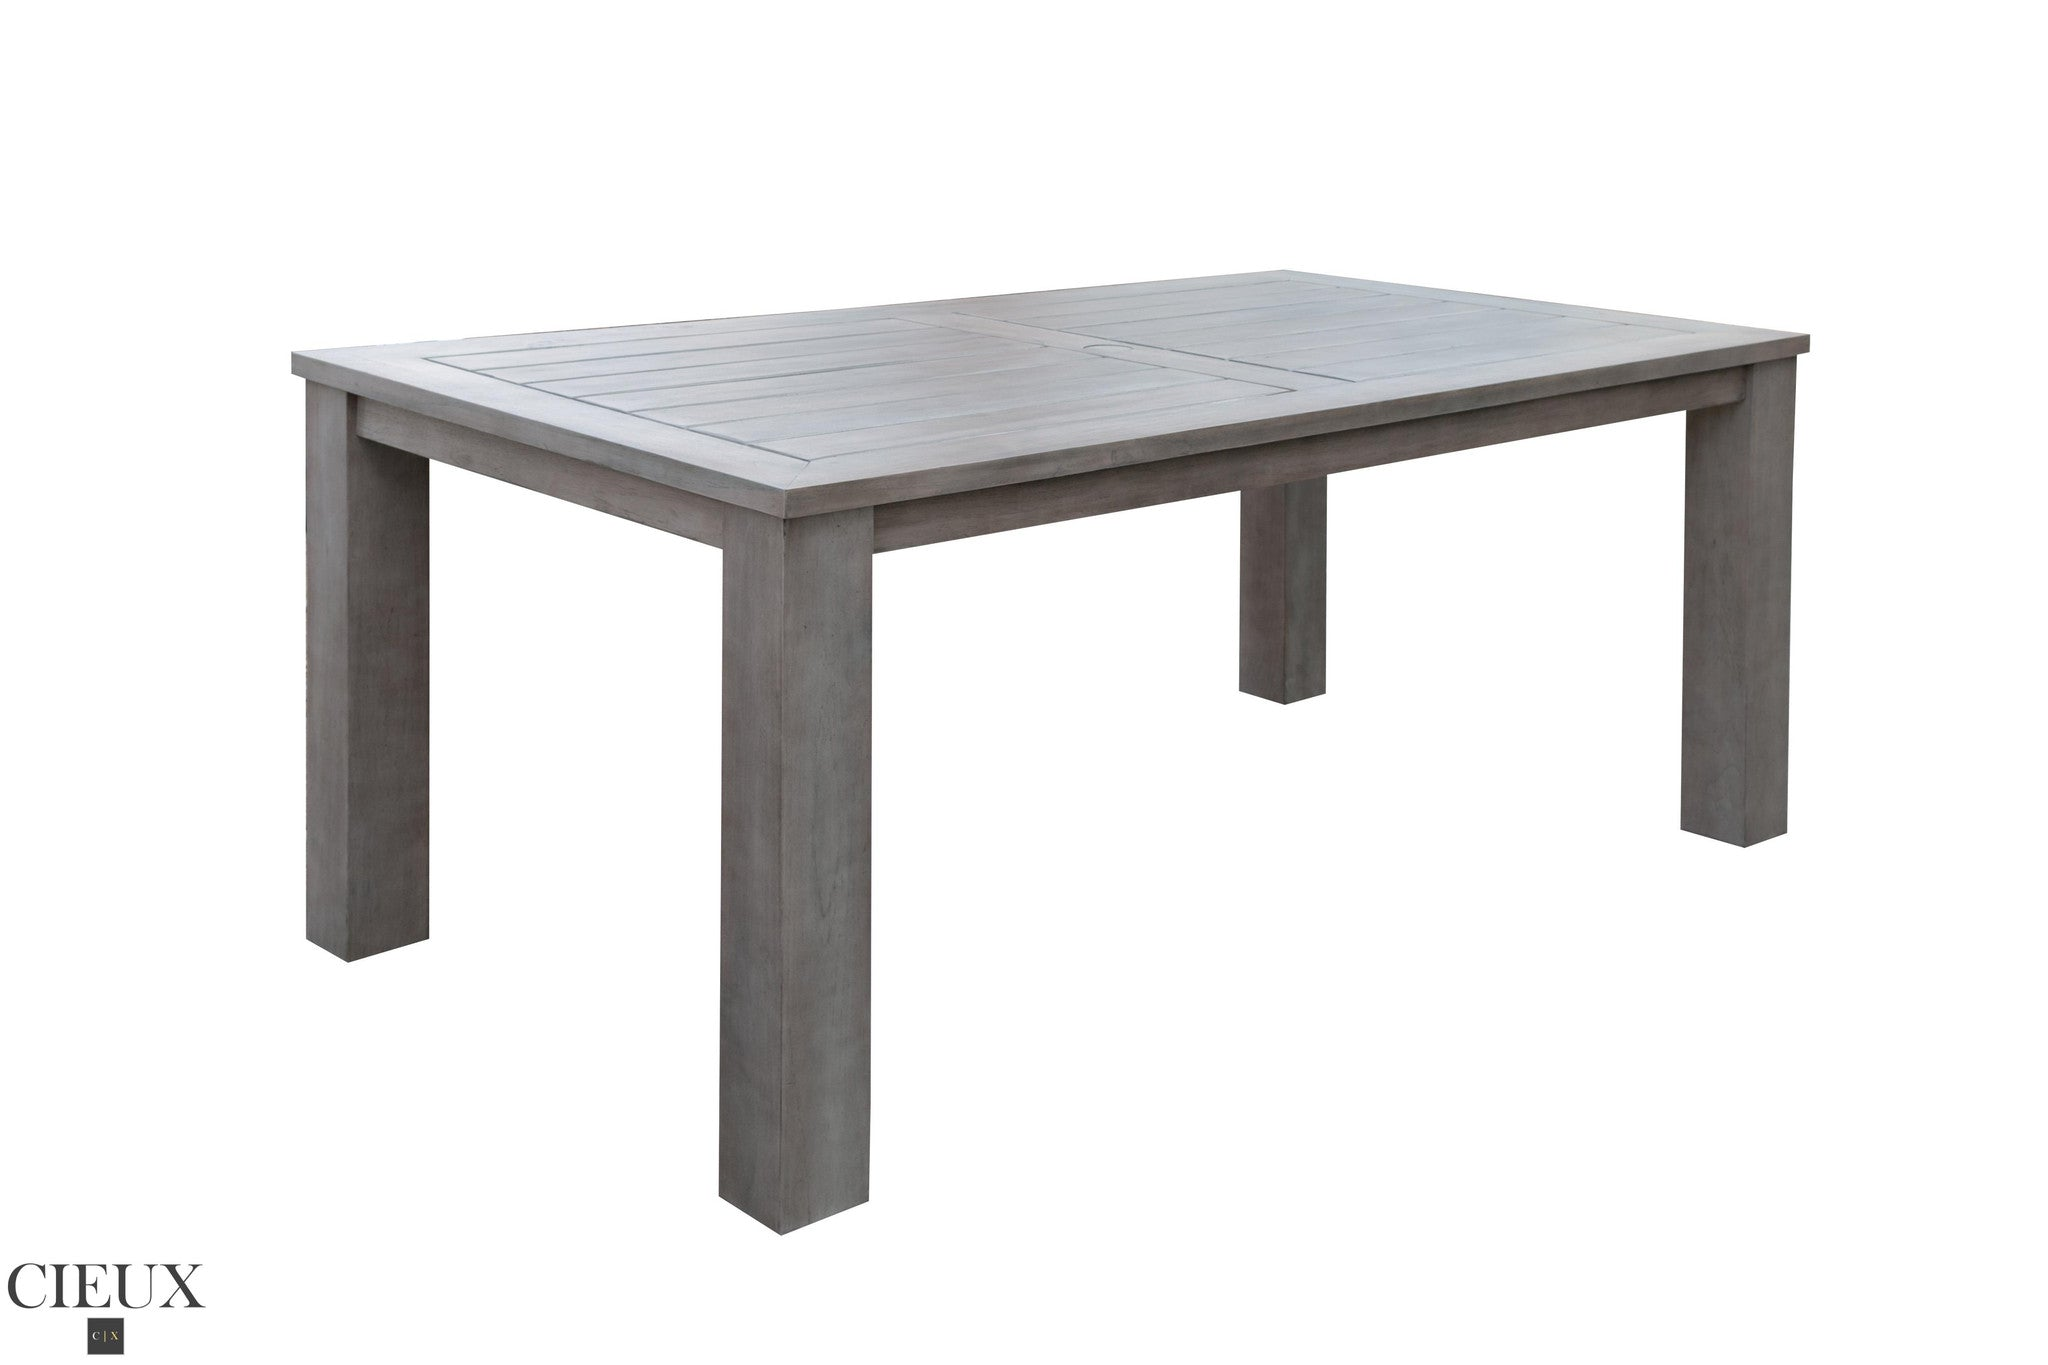 Grey Wicker Chairs champagne weathered teak table with four grey wicker chairs - cieux